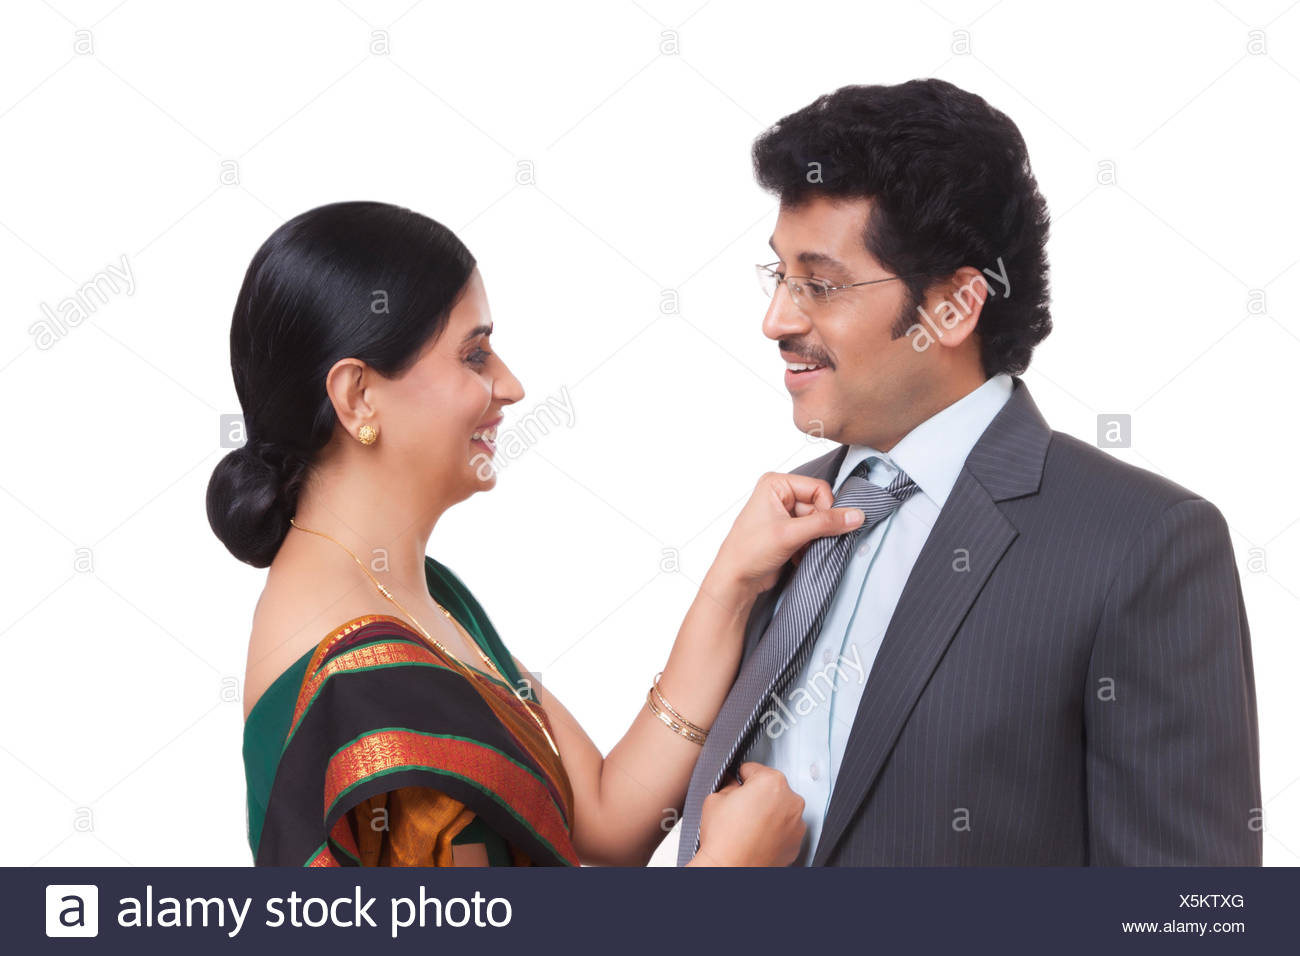 Wife fastening husband's tie - Stock Image